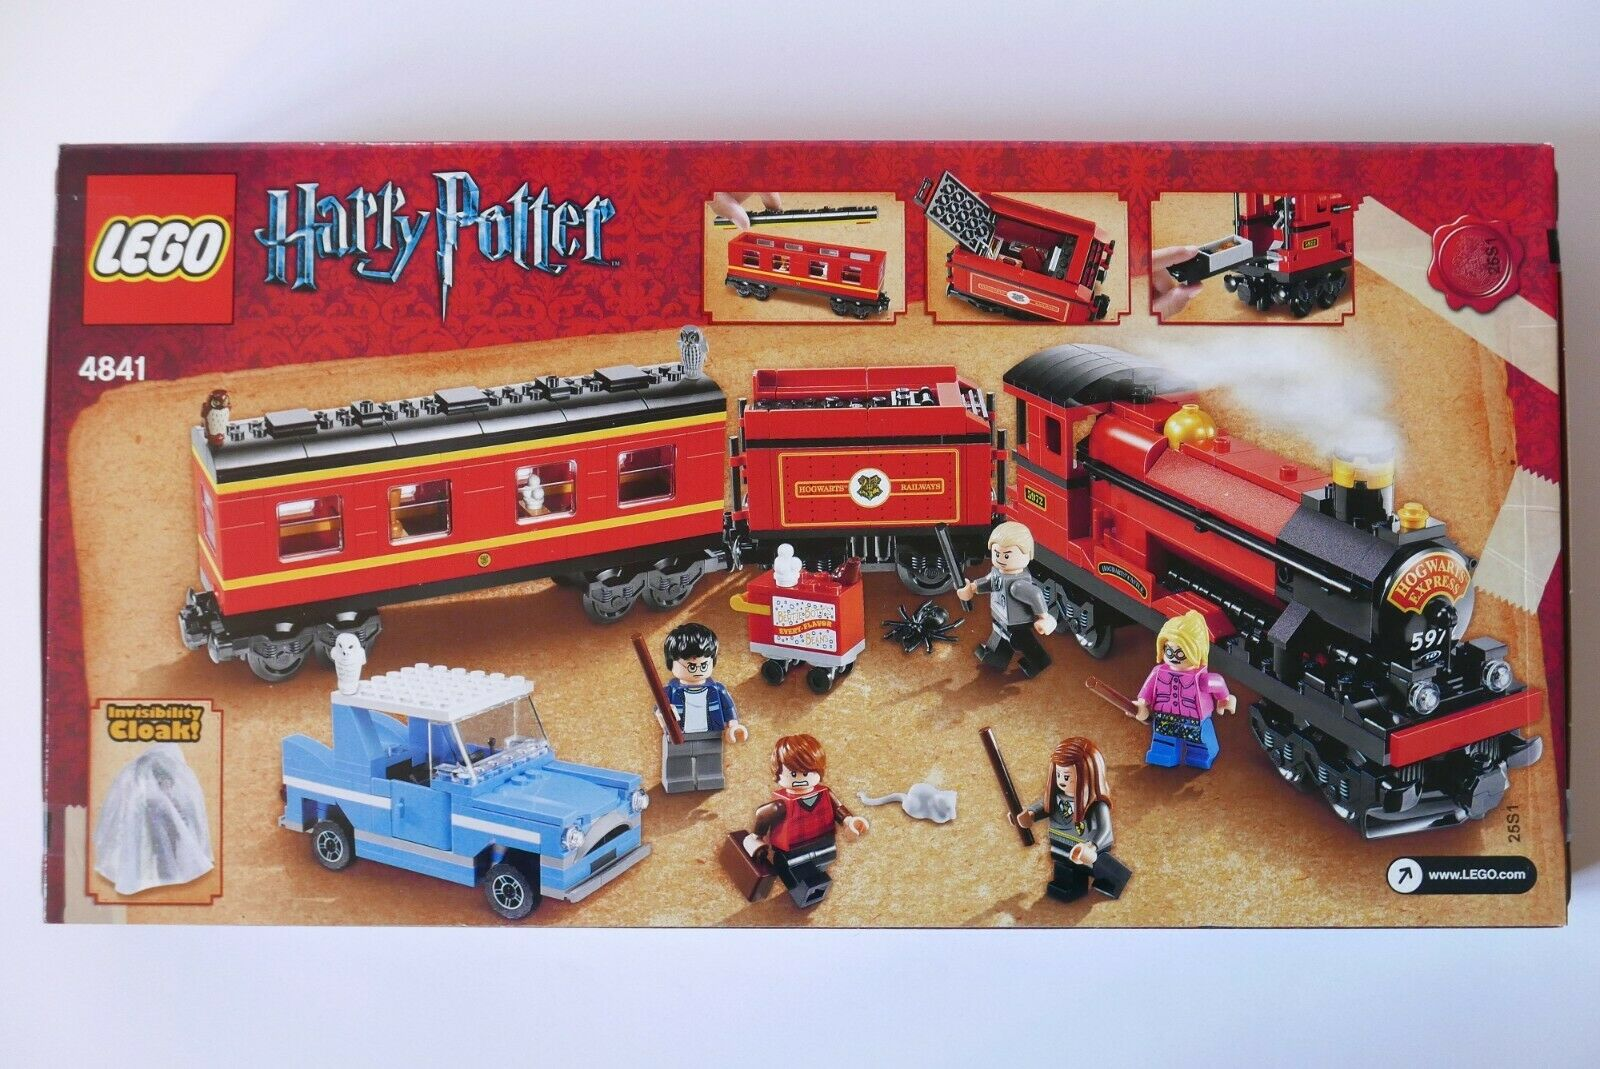 LEGO Harry Potter 4841 Hogwarts Express (3rd edition) NEW Sealed Sealed Sealed RARE MINT 70eaff